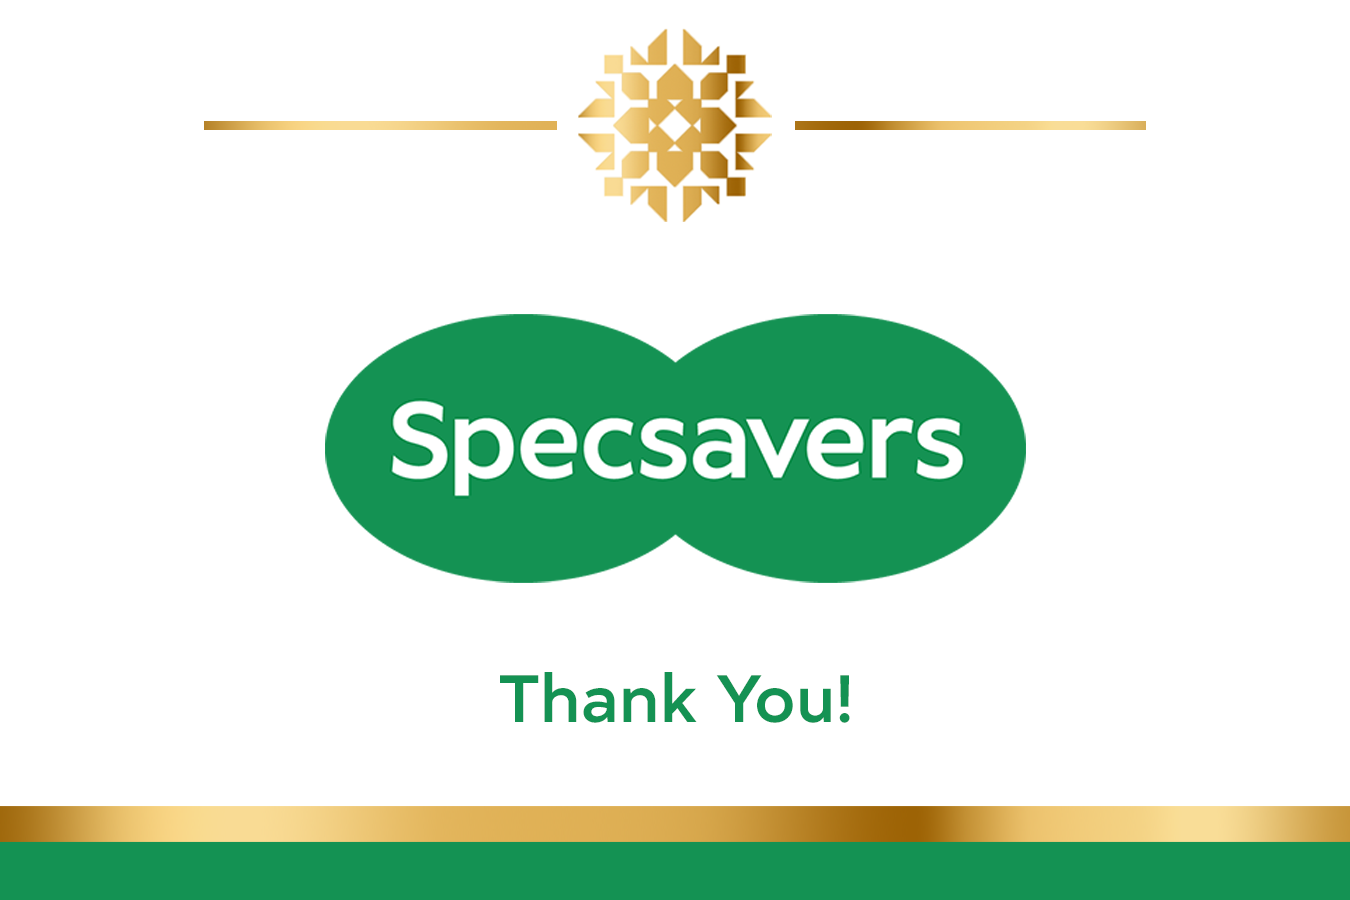 Specsavers Branded Prosecco Label